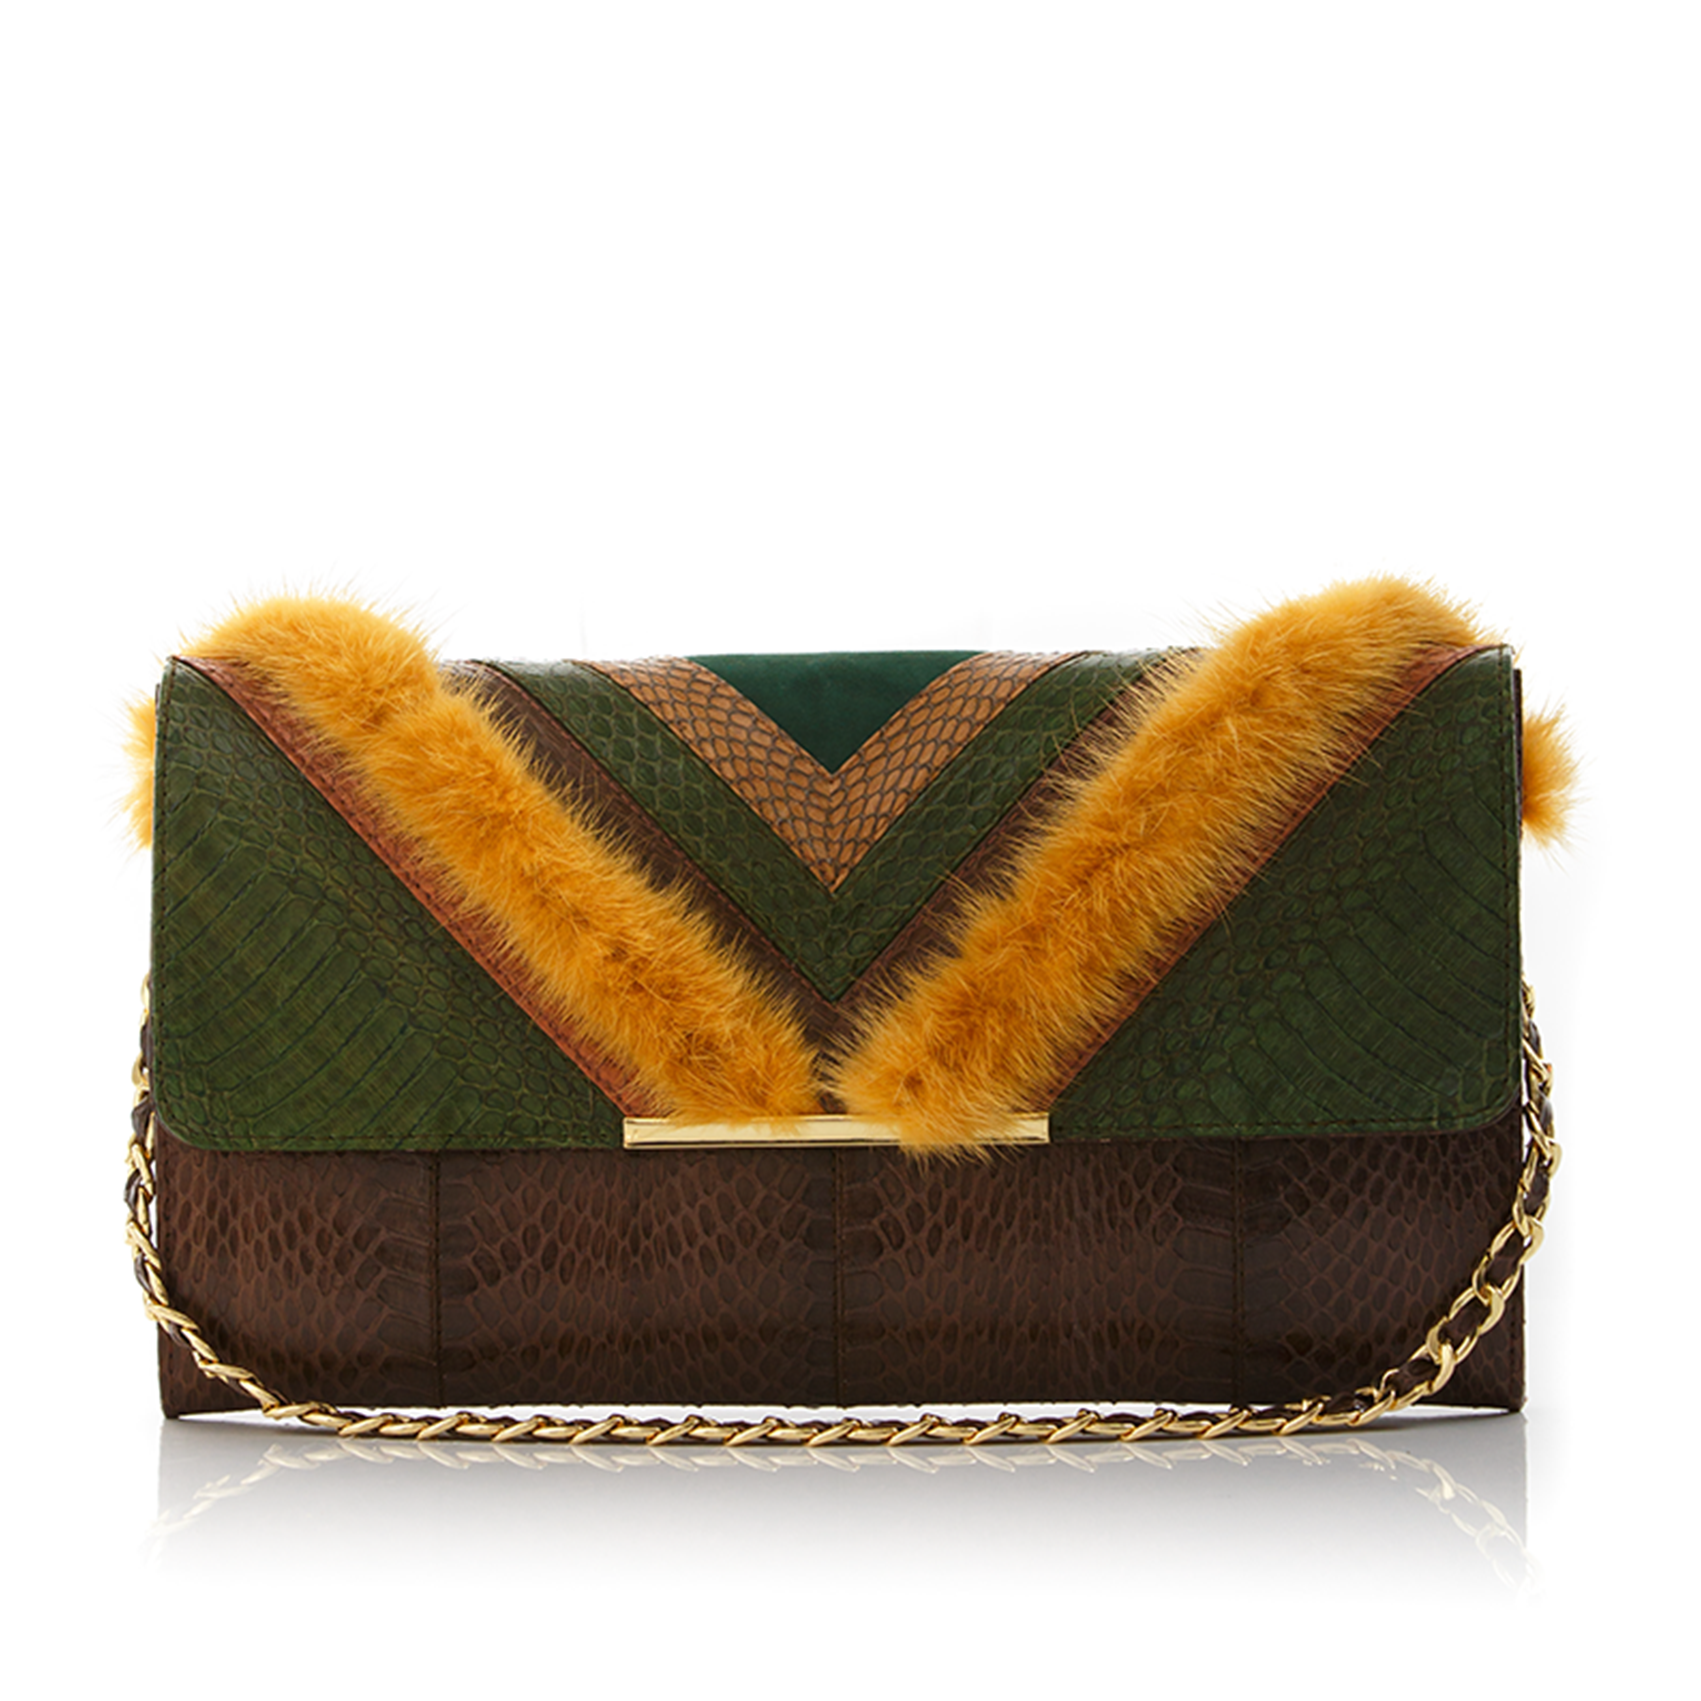 Clutch Bag KILLAH Summer Green & Coffee Brown Cobra with Mustard Mink